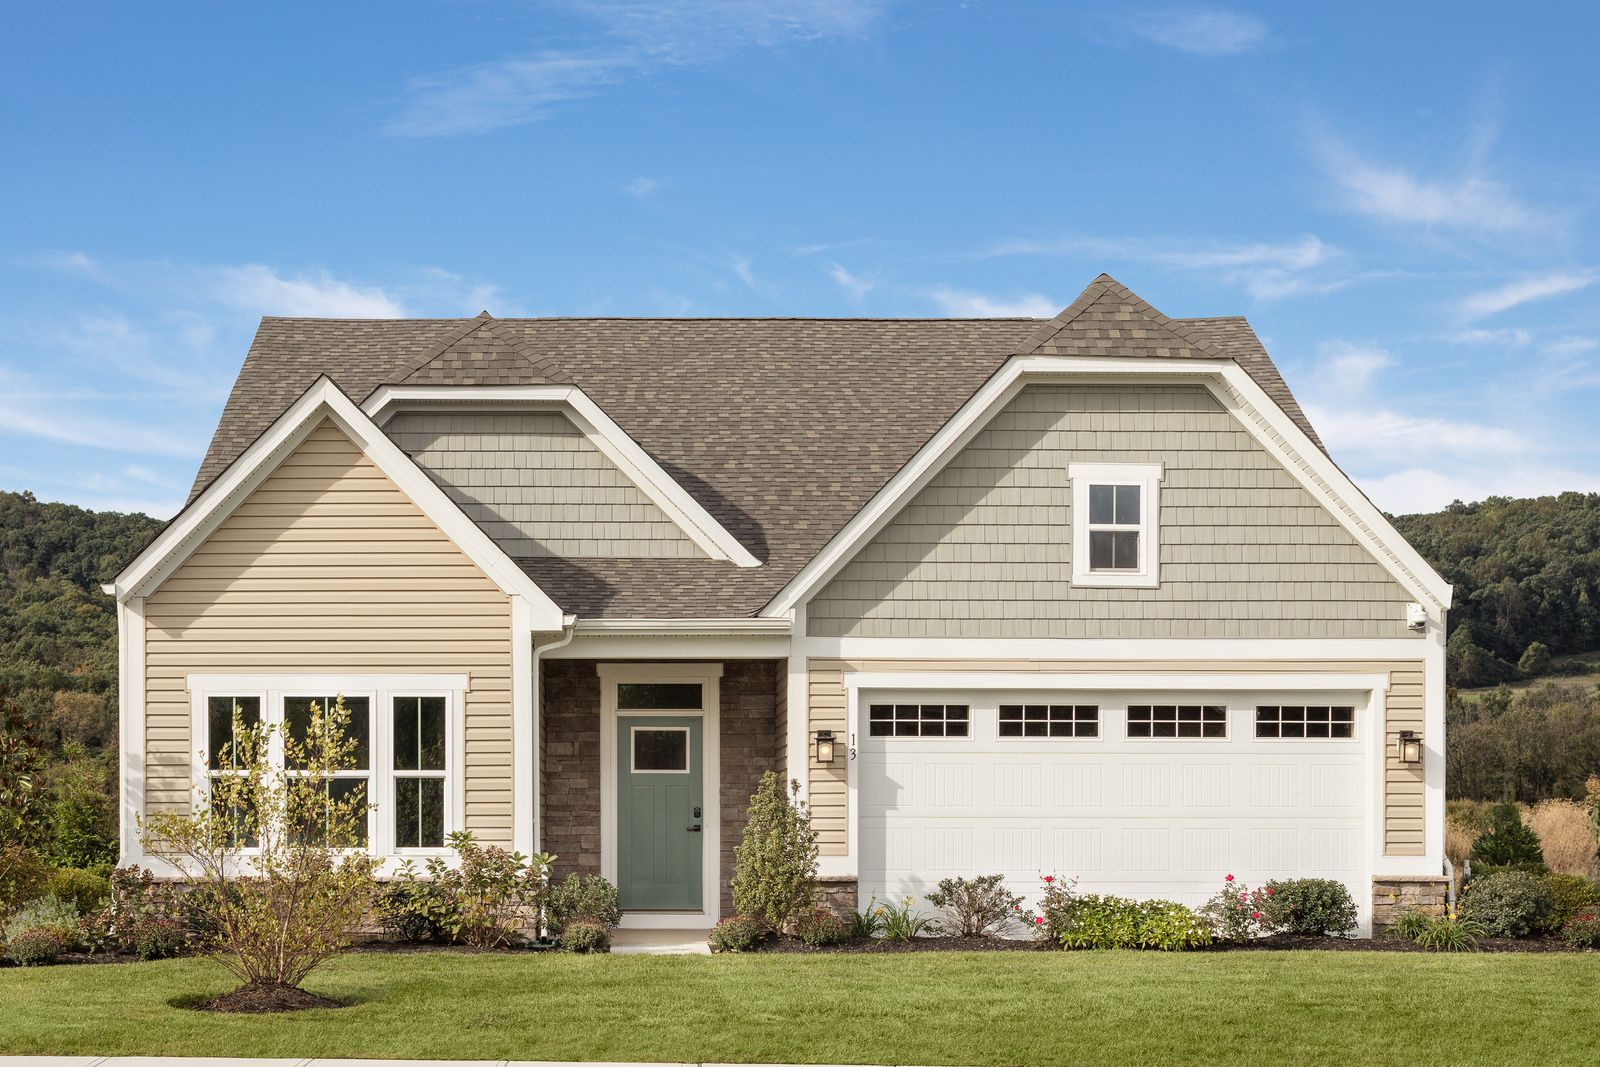 Welcome Home to Mansfield Meadows:You can own a luxury single-family home in a low-maintenance community with planned amenities atan unbeatable value in Northern New Jersey.Contact us today to learn more!